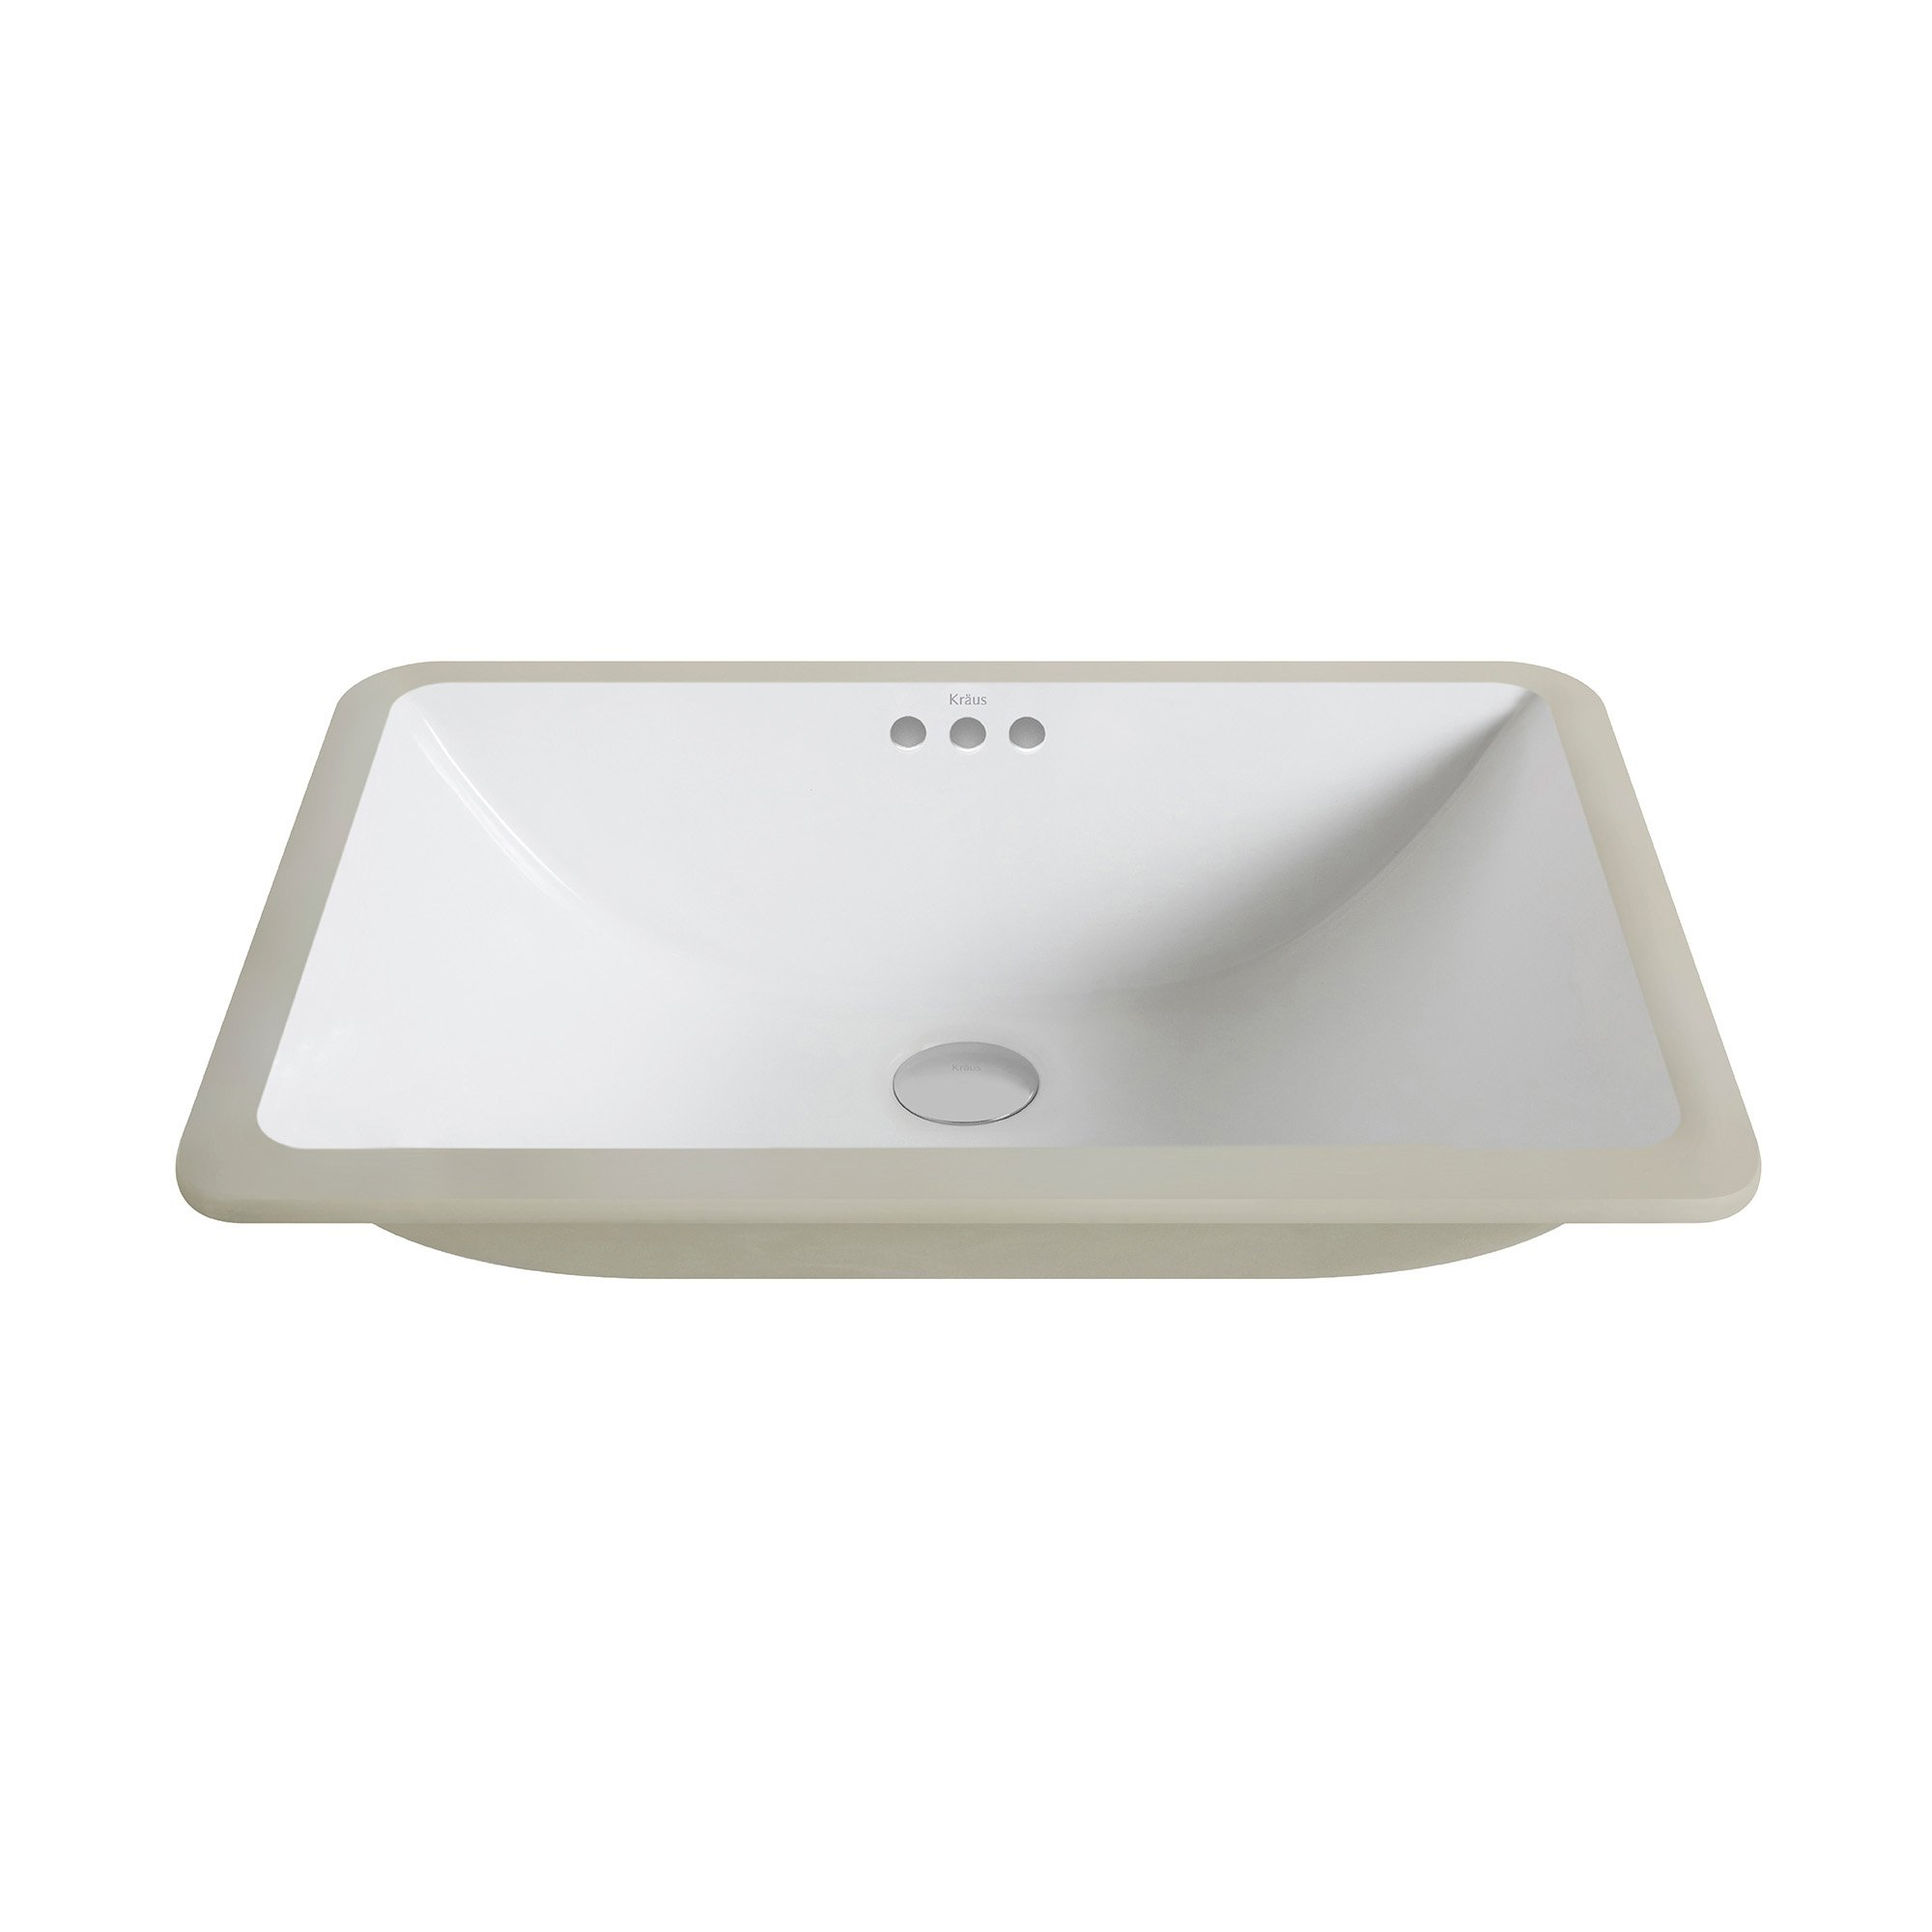 Kraus KCU-251 Elavo Ceramic Large Rectangular Undermount Bathroom Sink with Overflow, White by Kraus